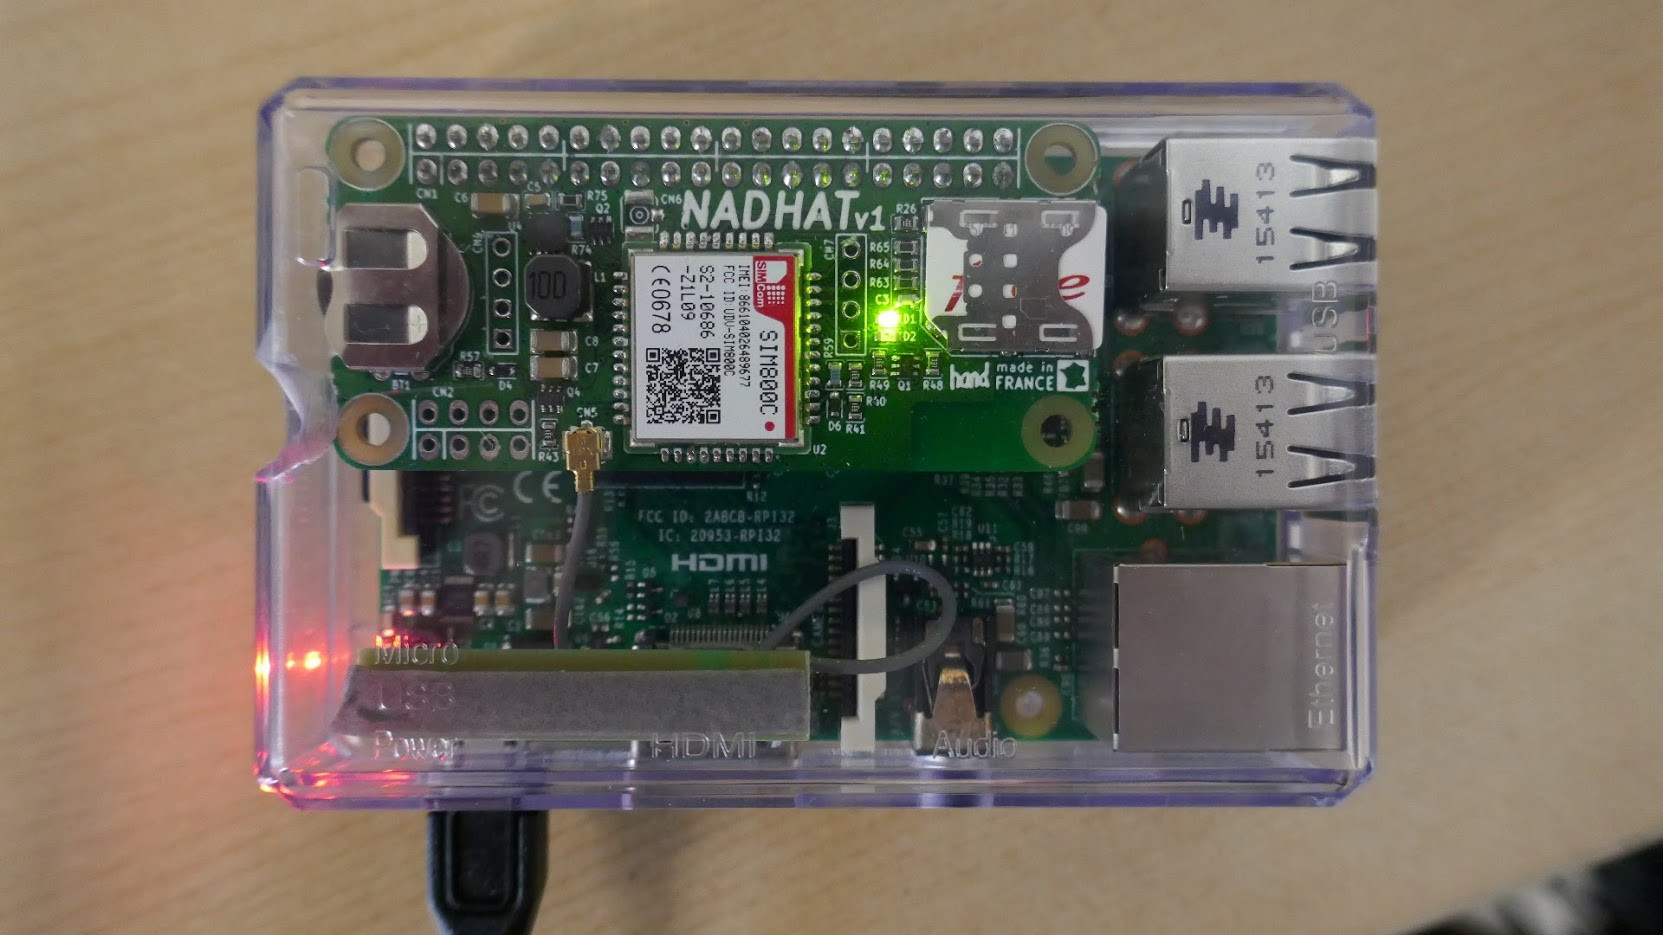 Nadhat is an Add-on Board for Raspberry Pi Boards with 2G GSM/GPRS